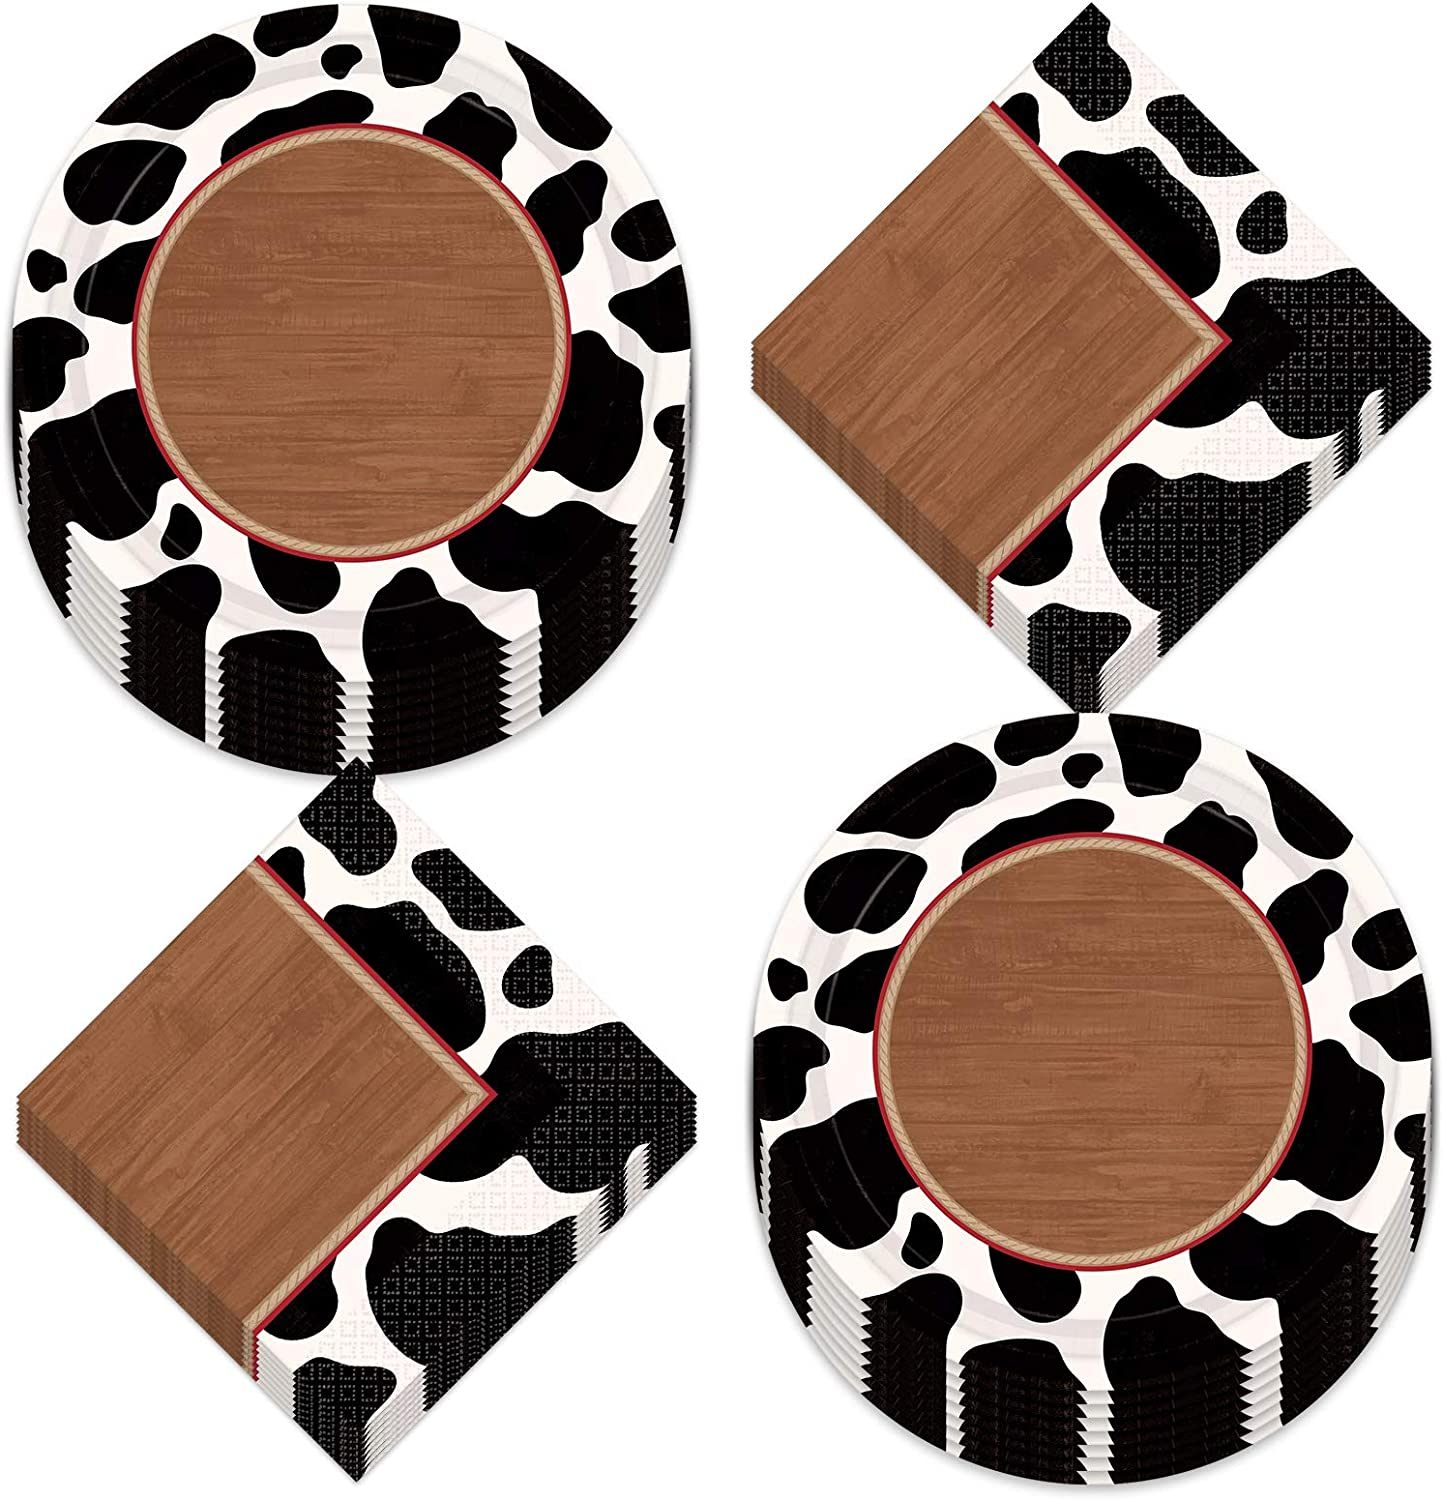 Western Party Wood & Cow Print Round Paper Dessert Plates and Beverage Napkins (Serves 16)